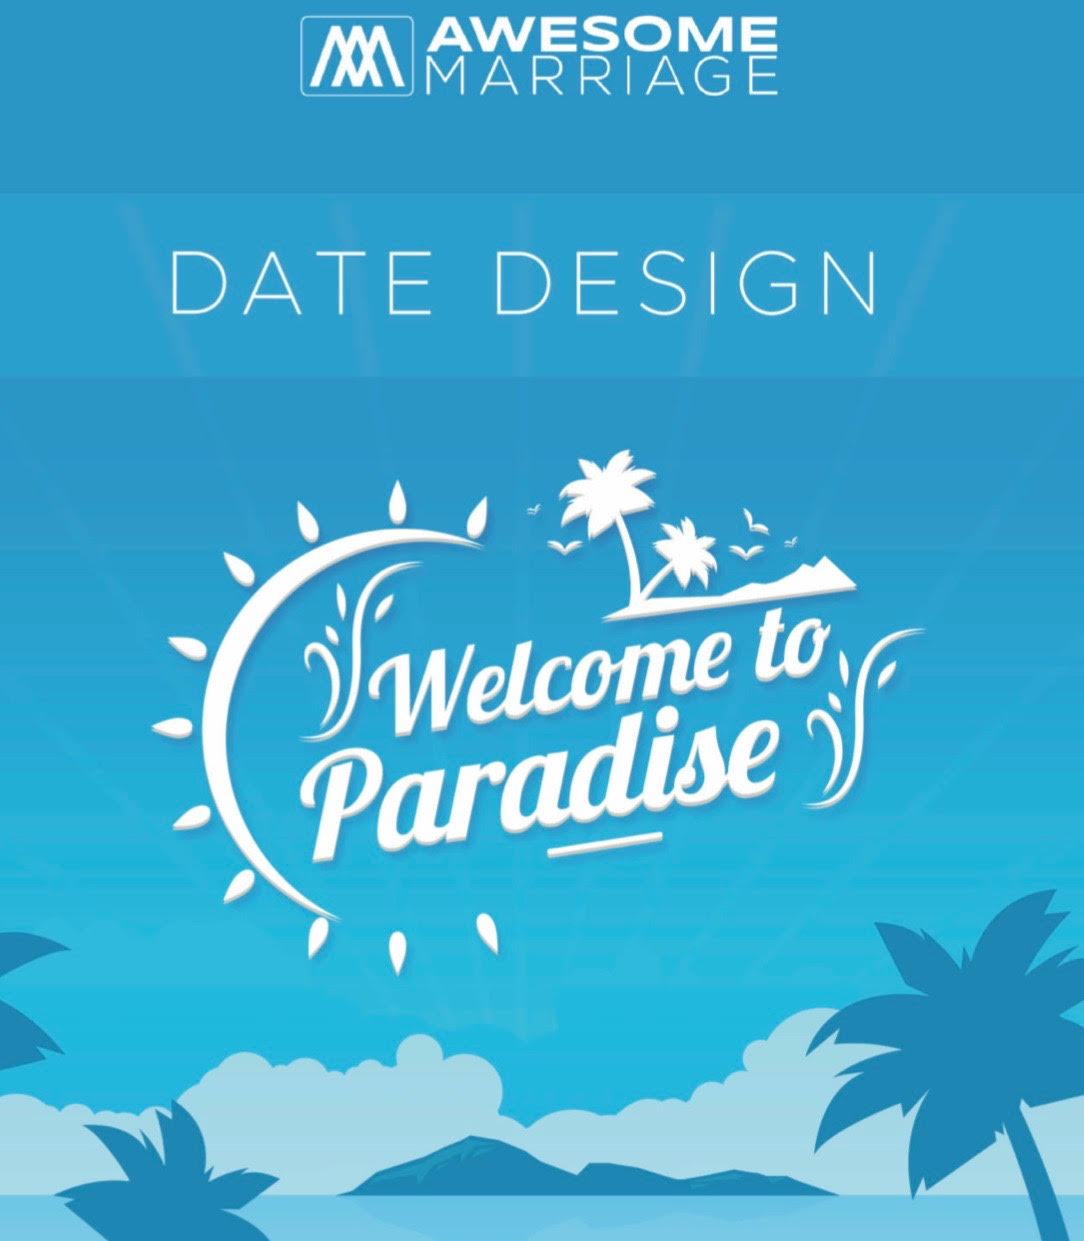 Date Design Welcome To Paradise Image.jpg